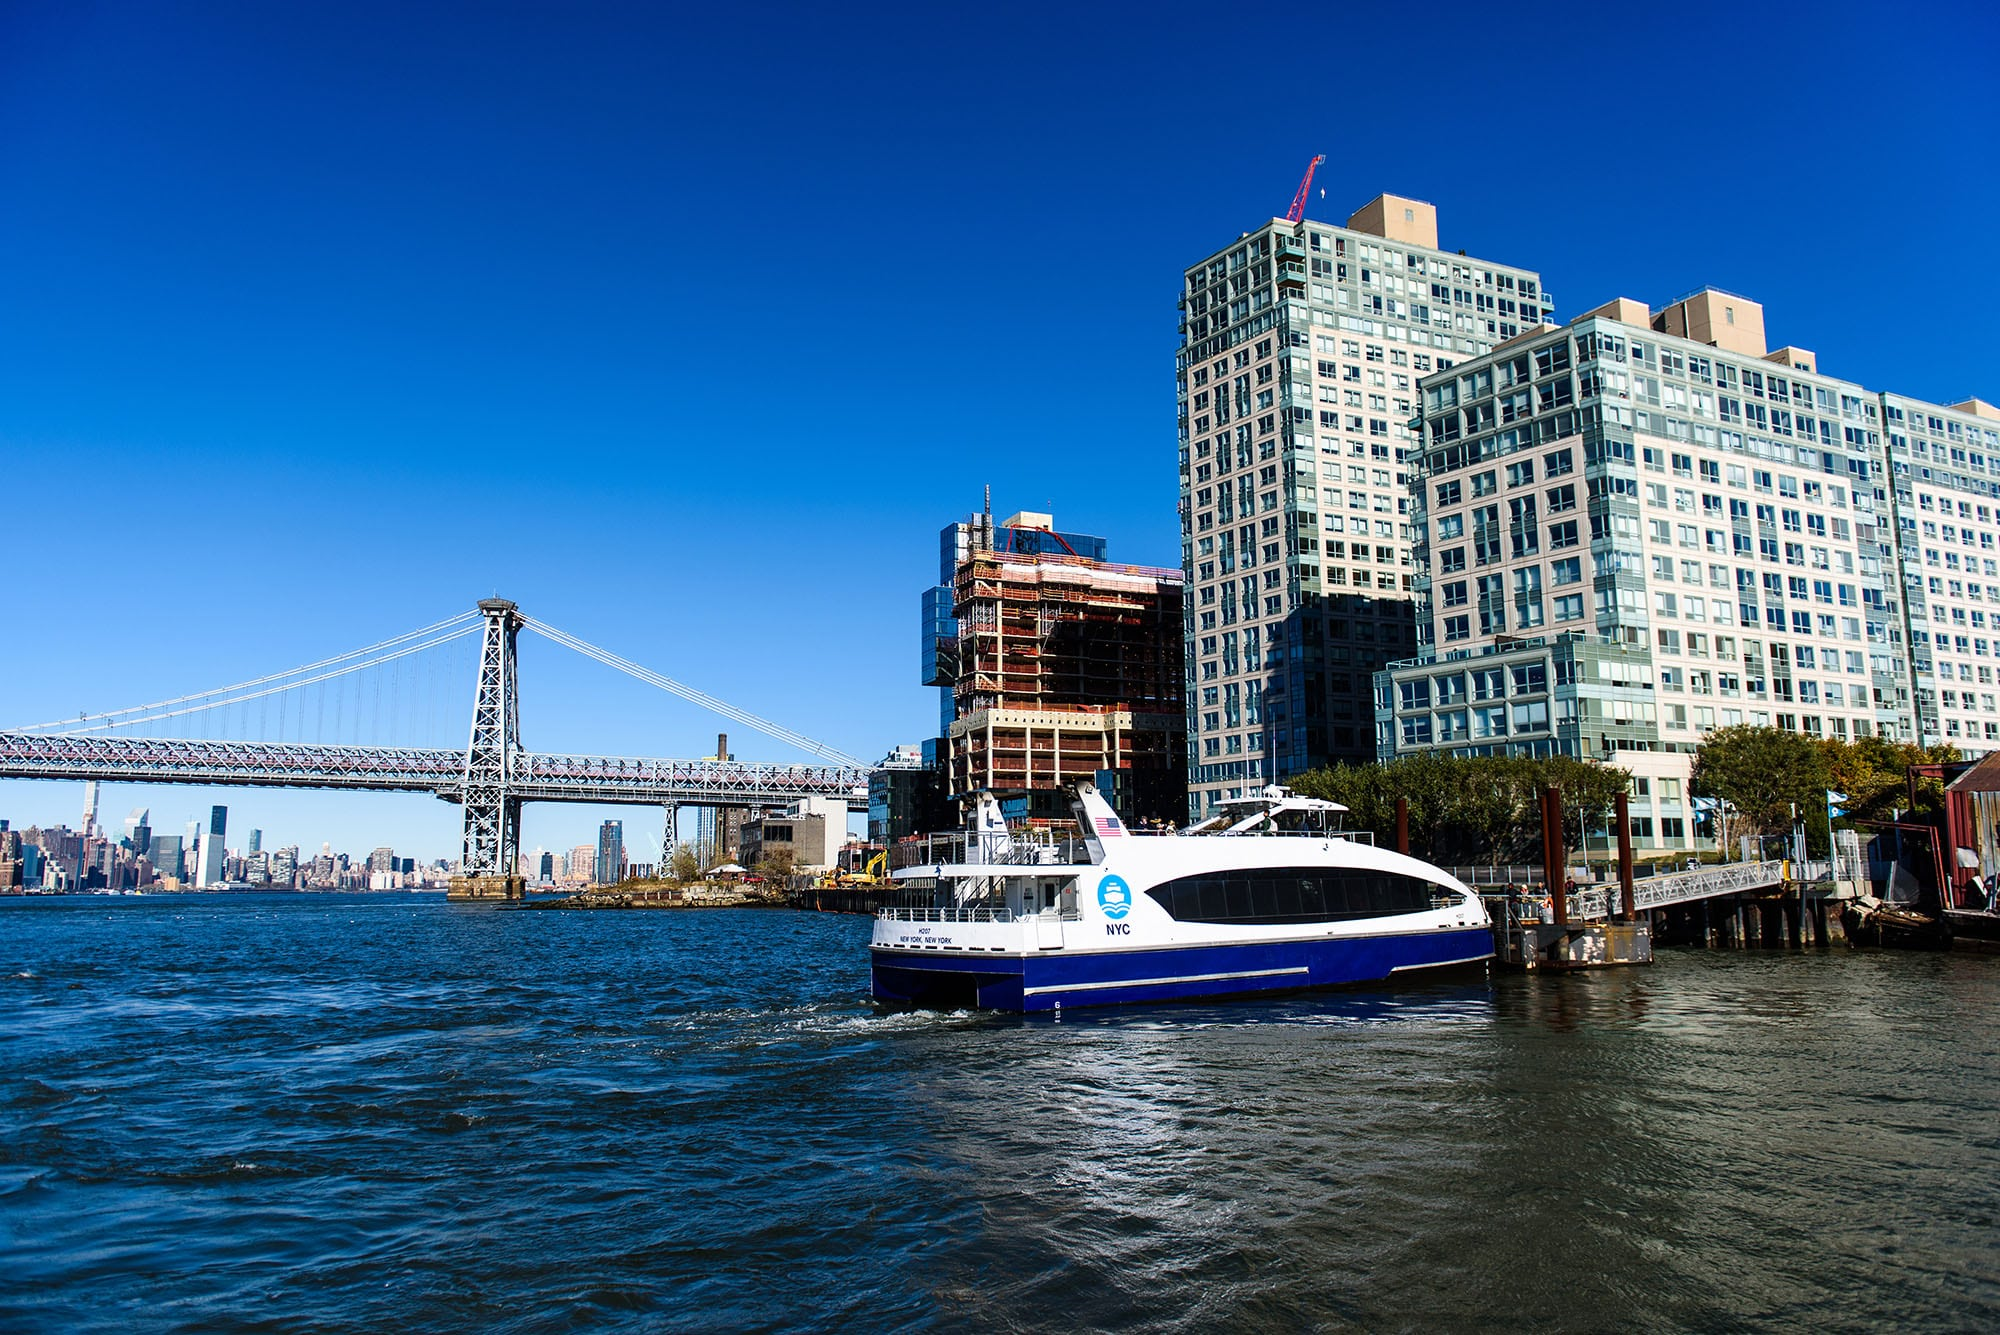 Images - New York City Ferry Service